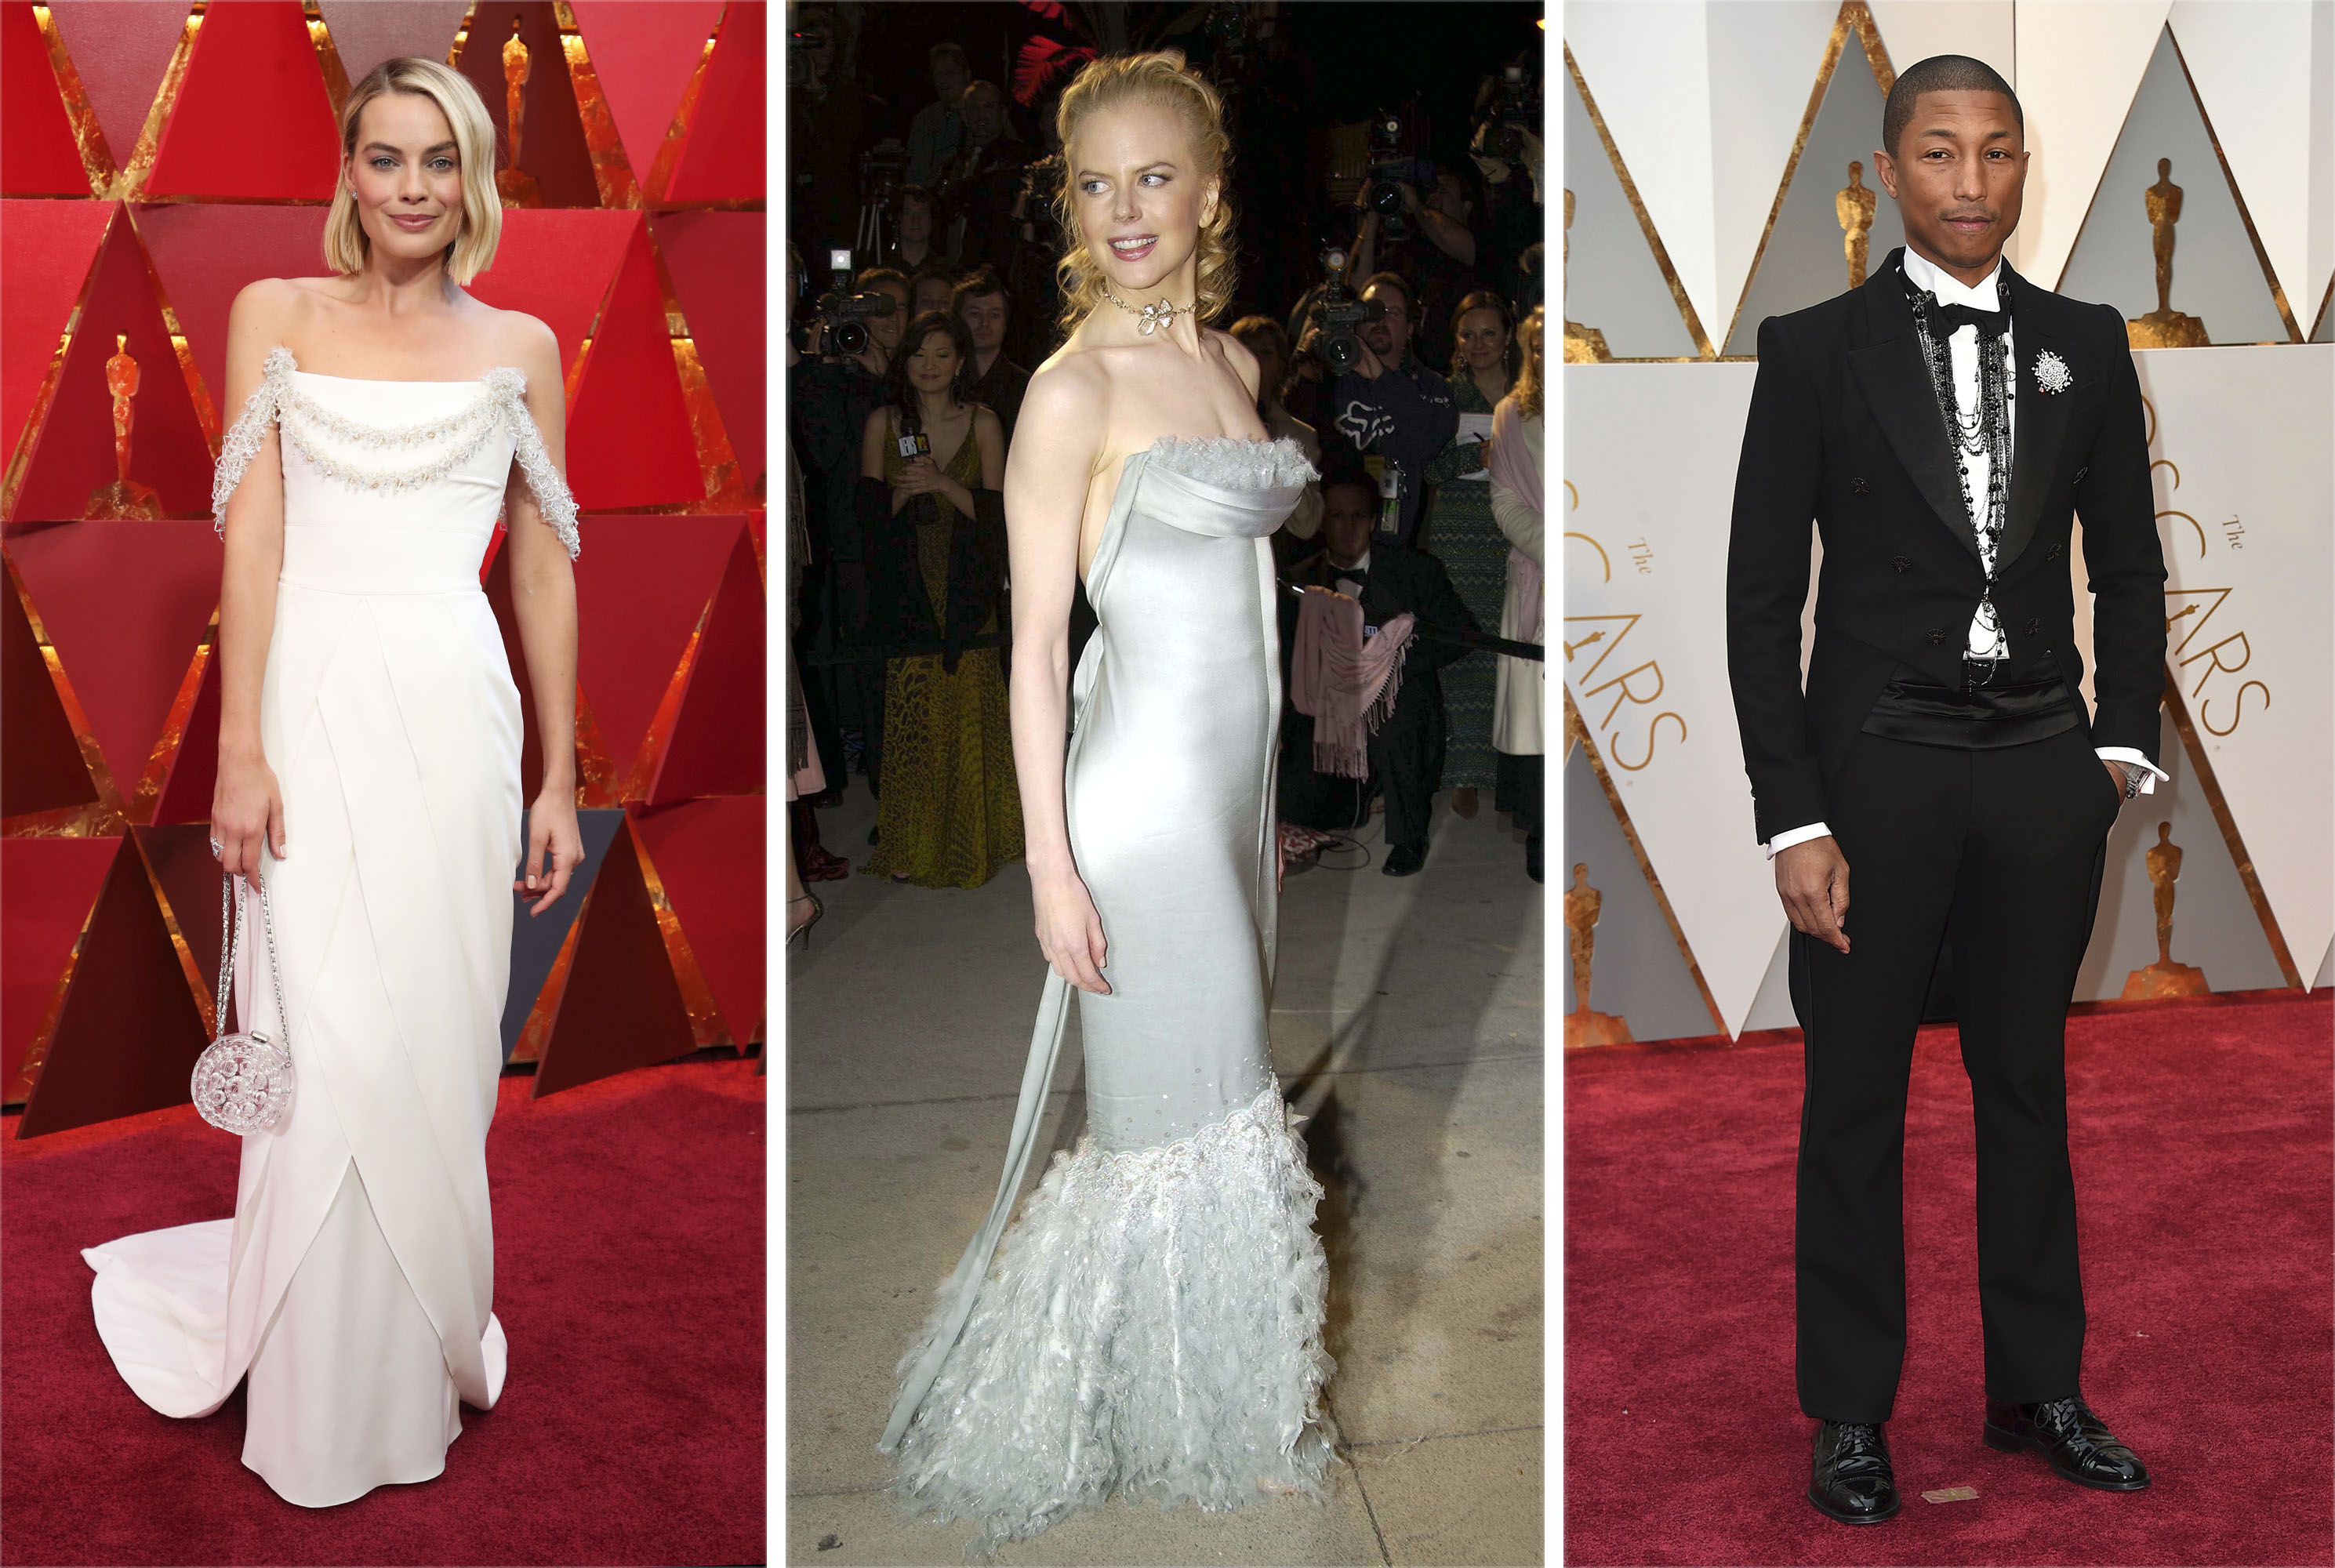 Karl Lagerfeld's Chanel on the Oscars Red Carpet